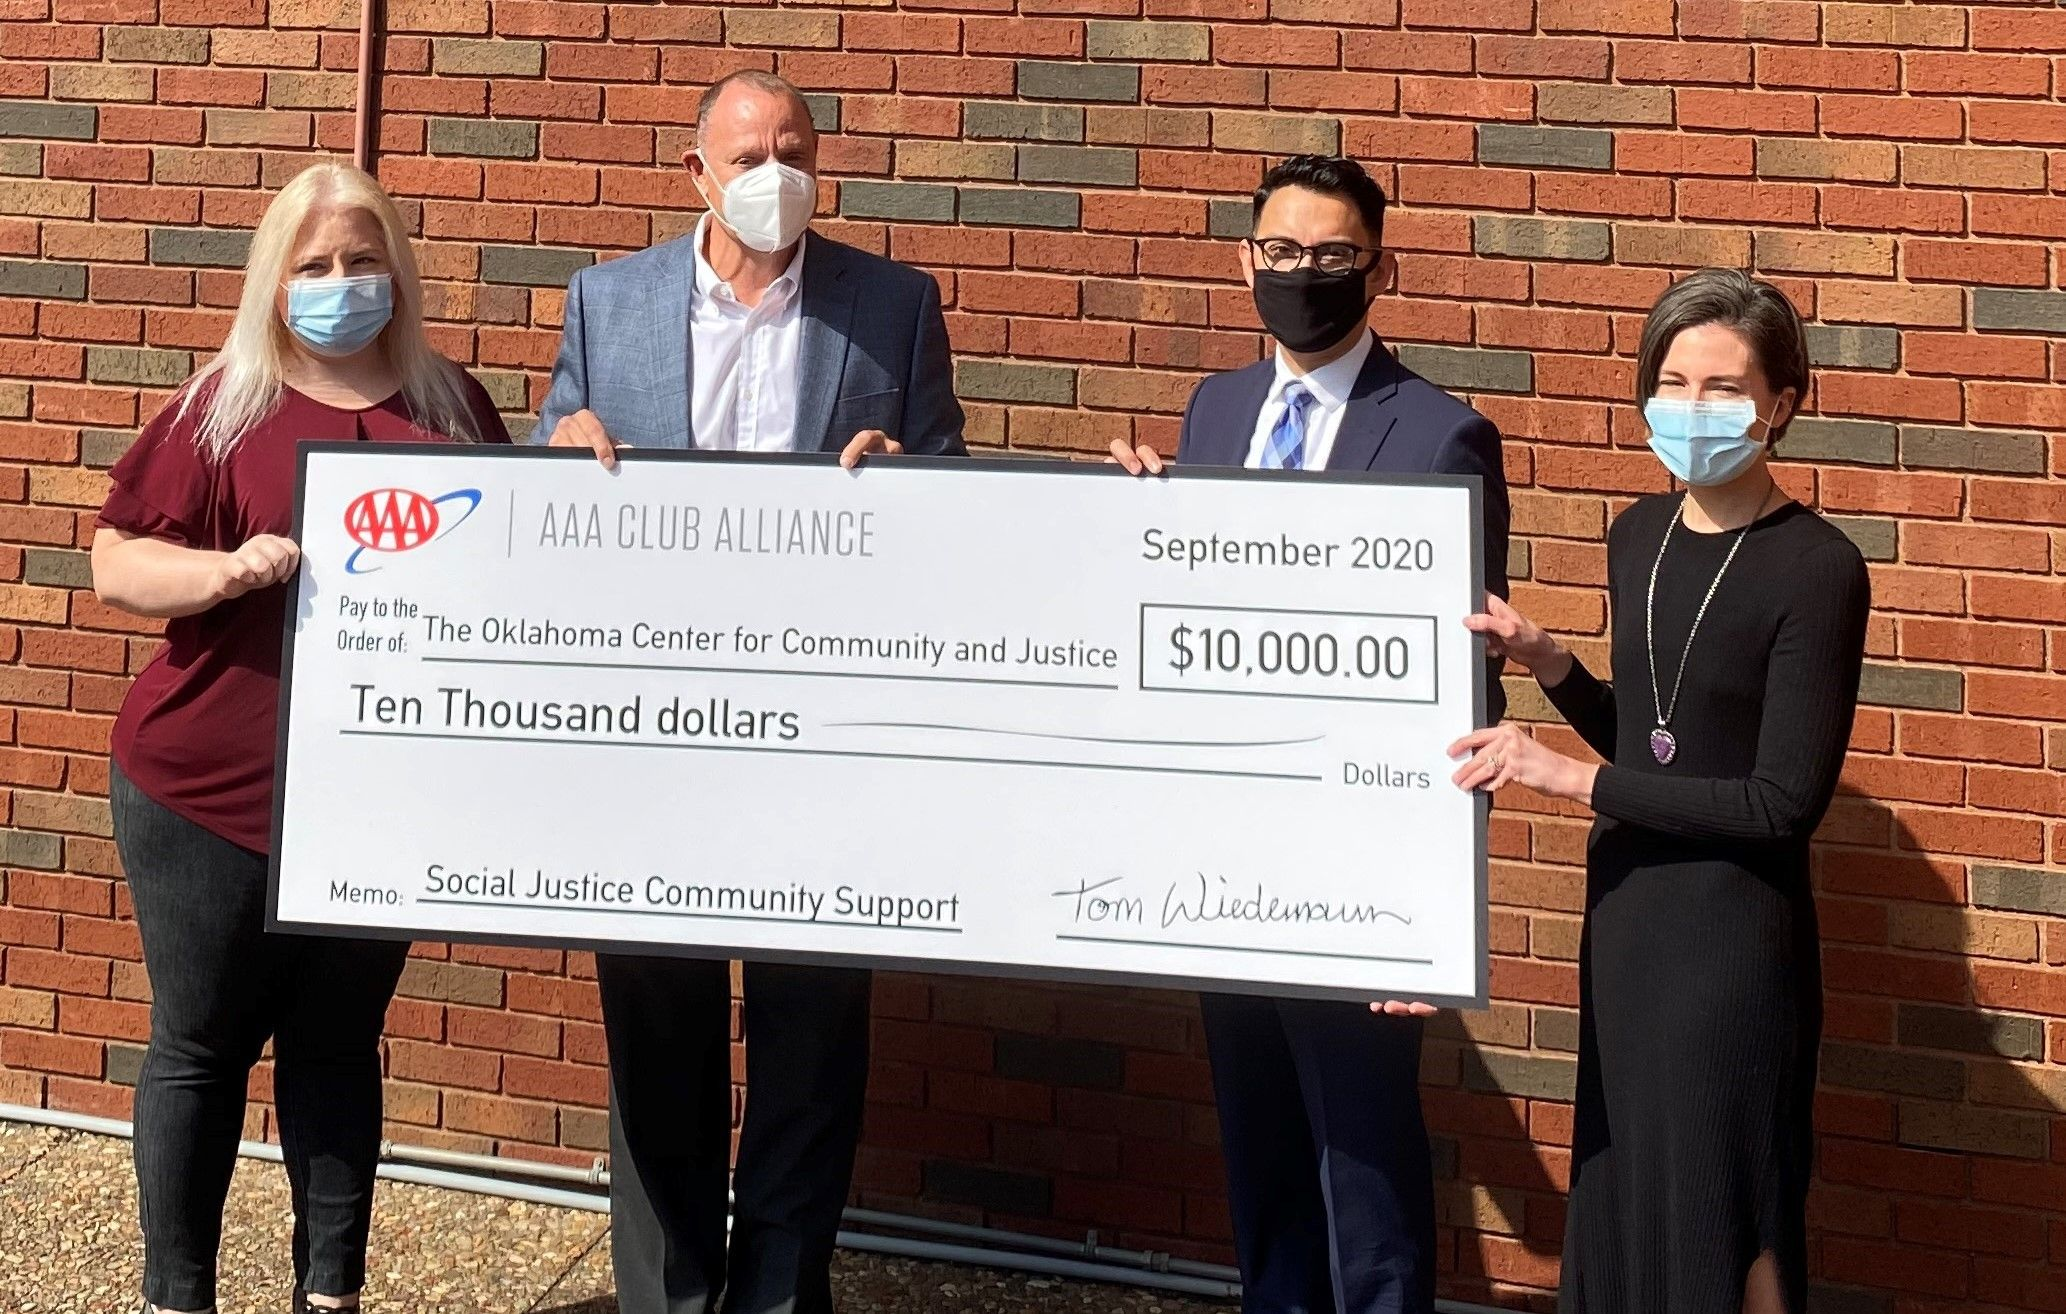 AAA Associates Select Oklahoma Center for Community and Justice for Social Justice Support